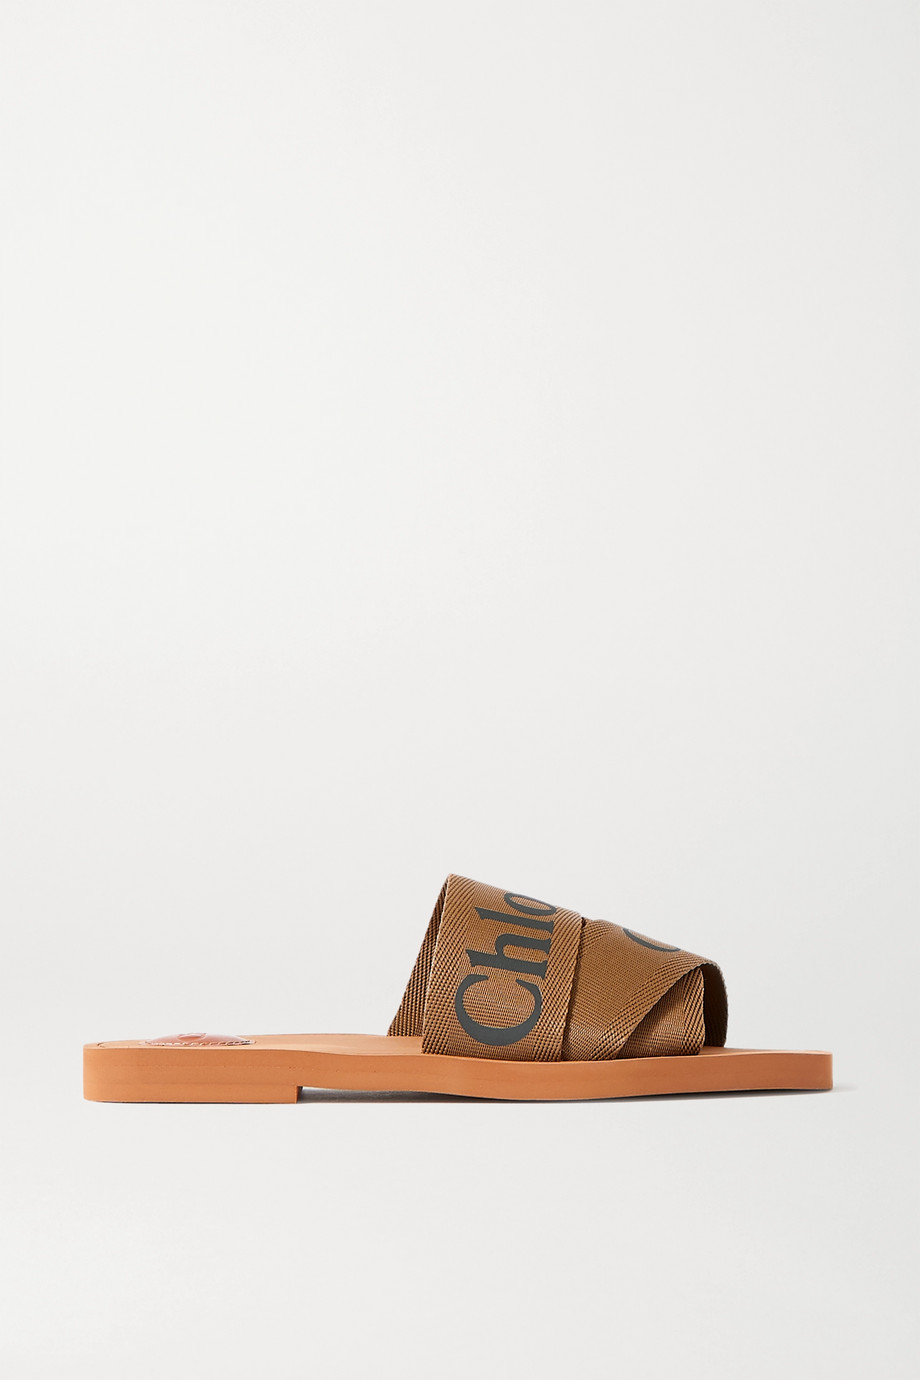 Chloé Woody logo-detailed canvas slides